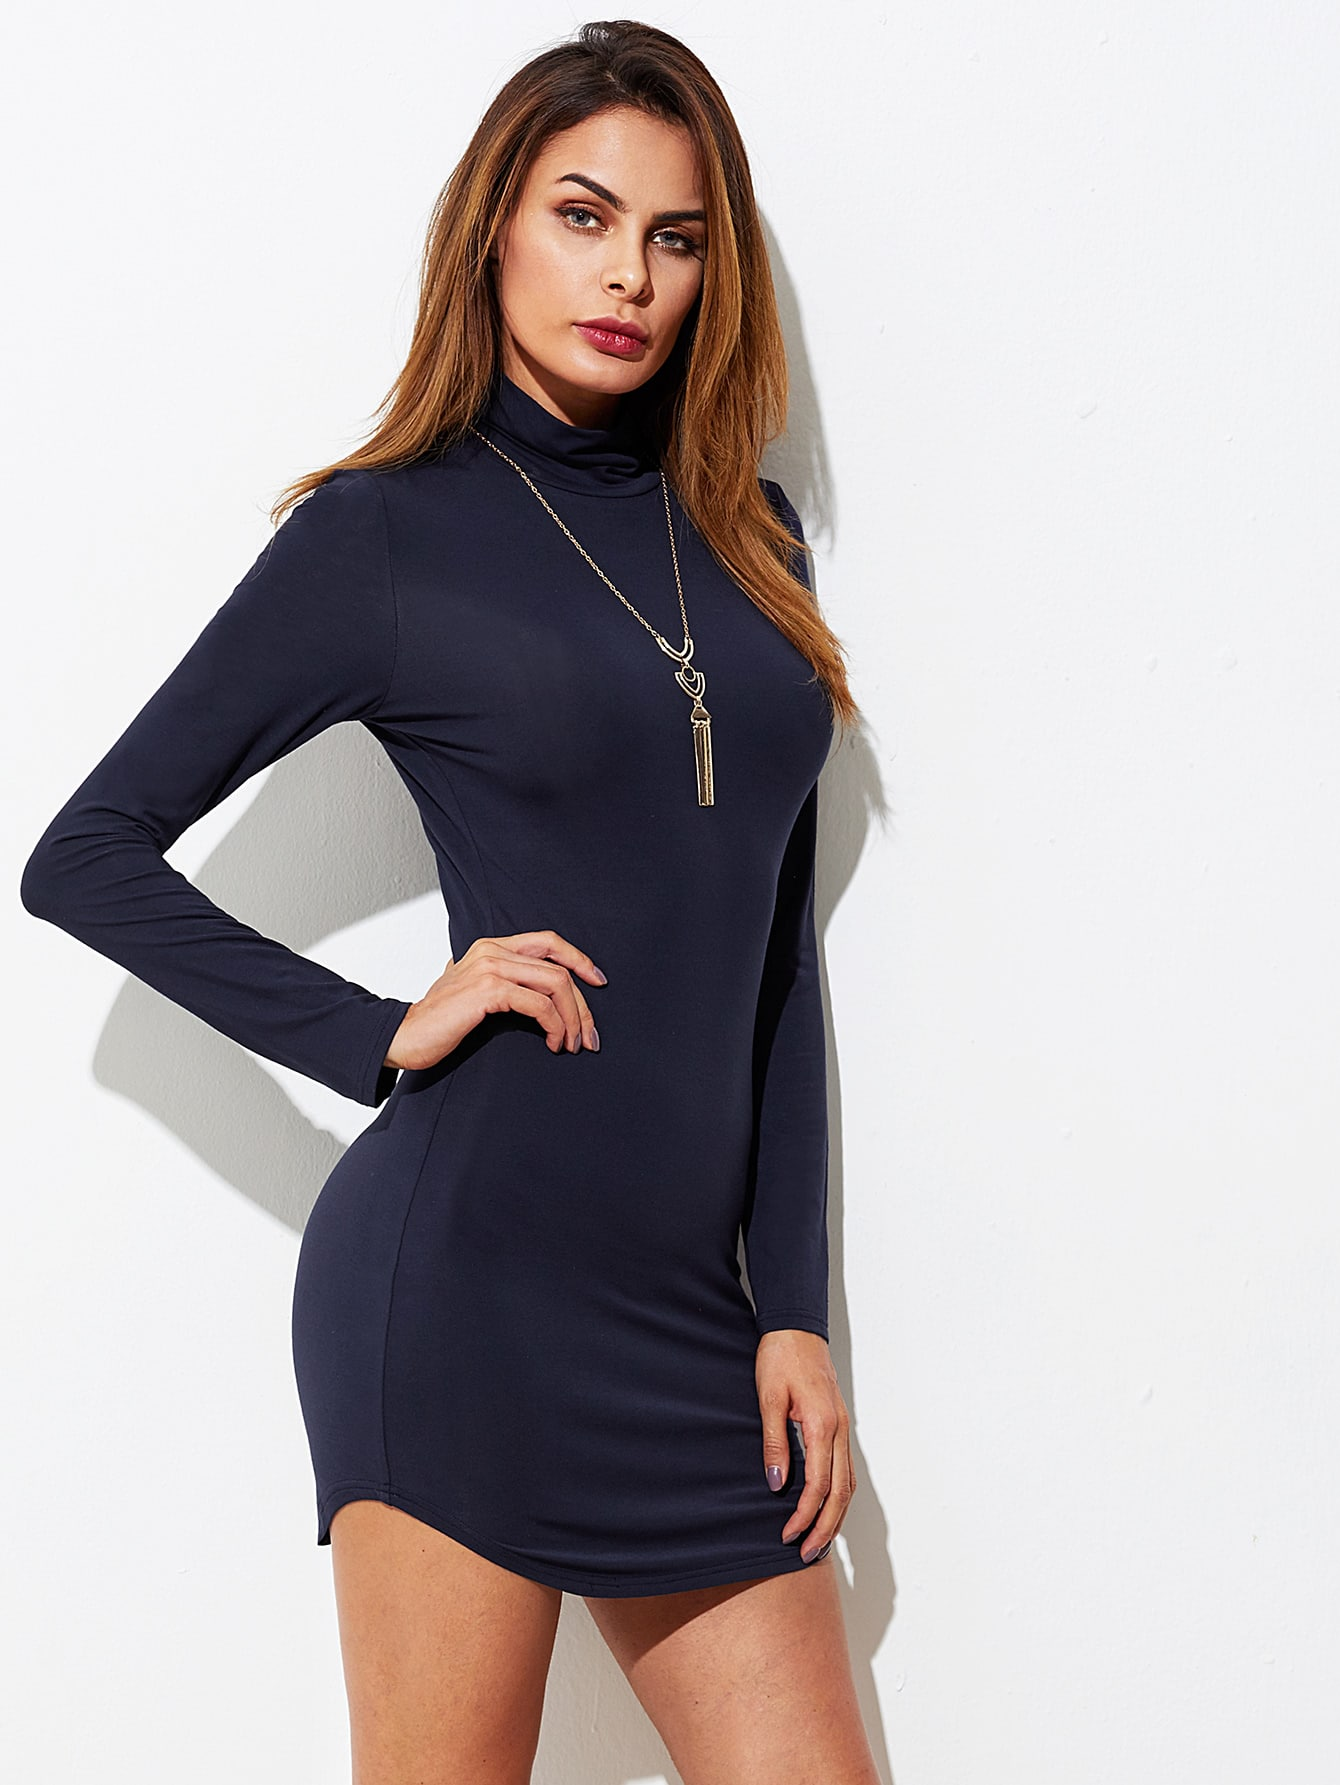 Cowl Neck Curved Hem Bodycon Dress batwing sleeve pocket side curved hem textured dress